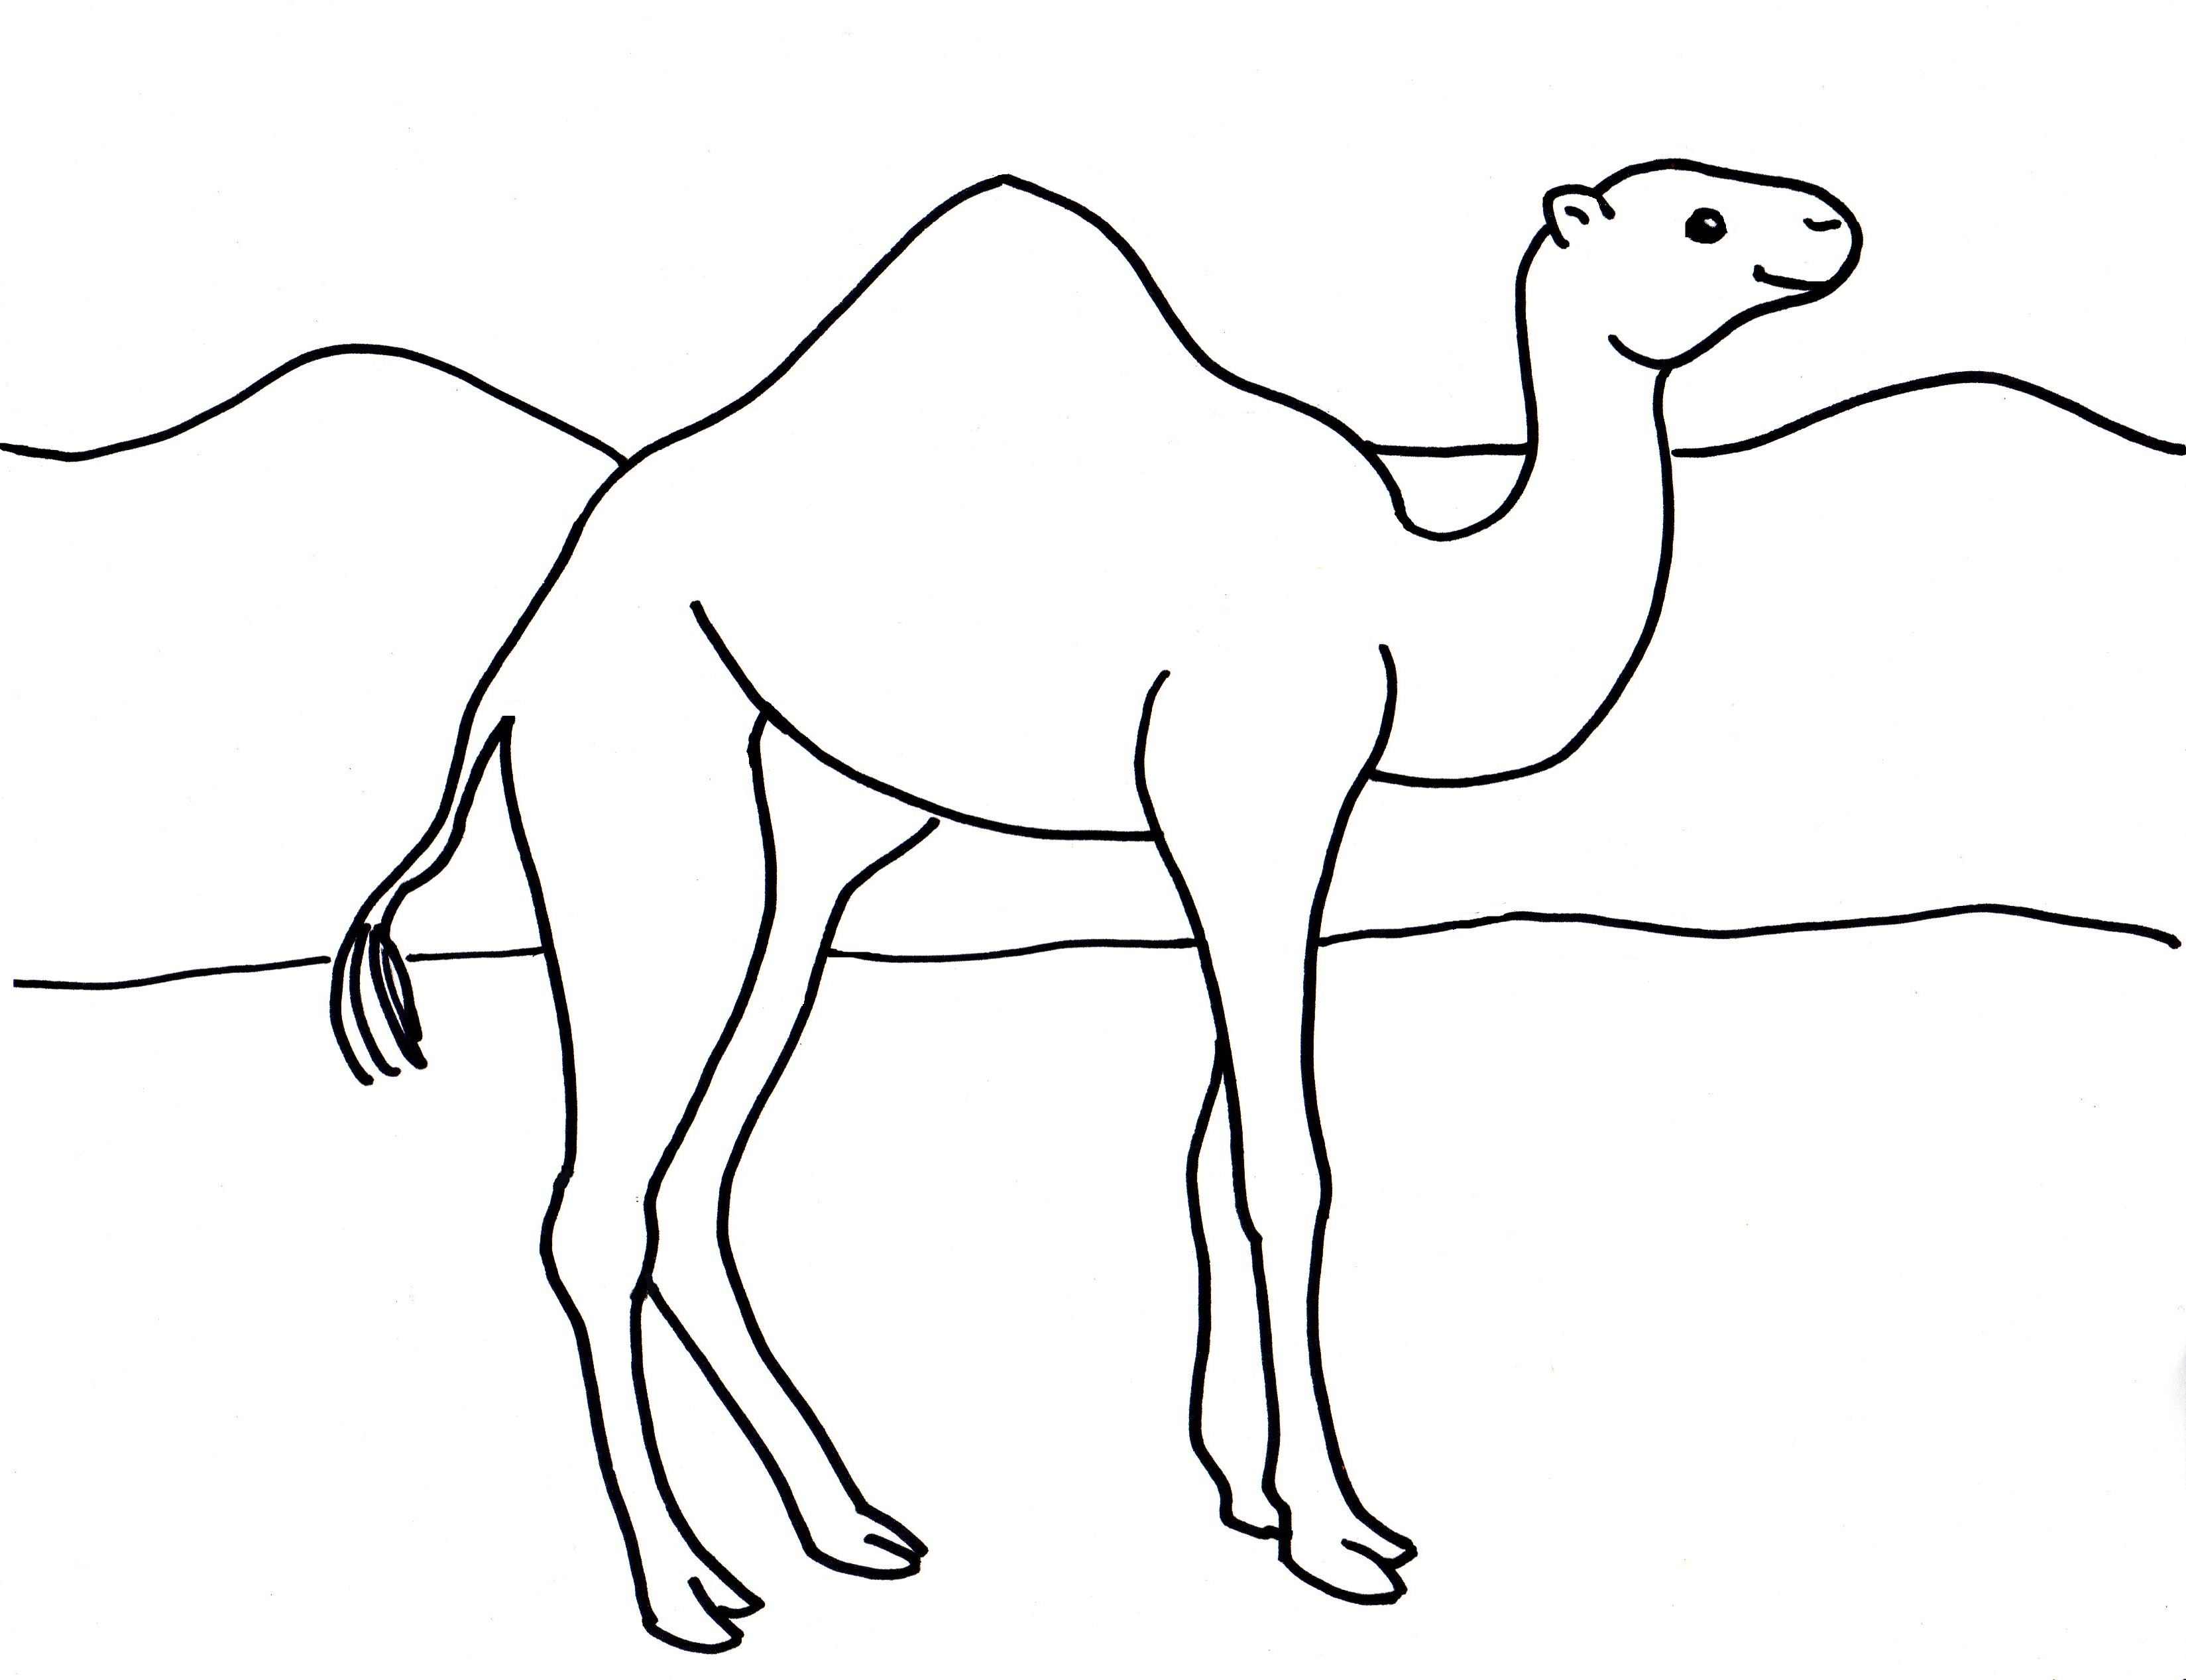 Camel clipart colouring page. Last chance pictures to